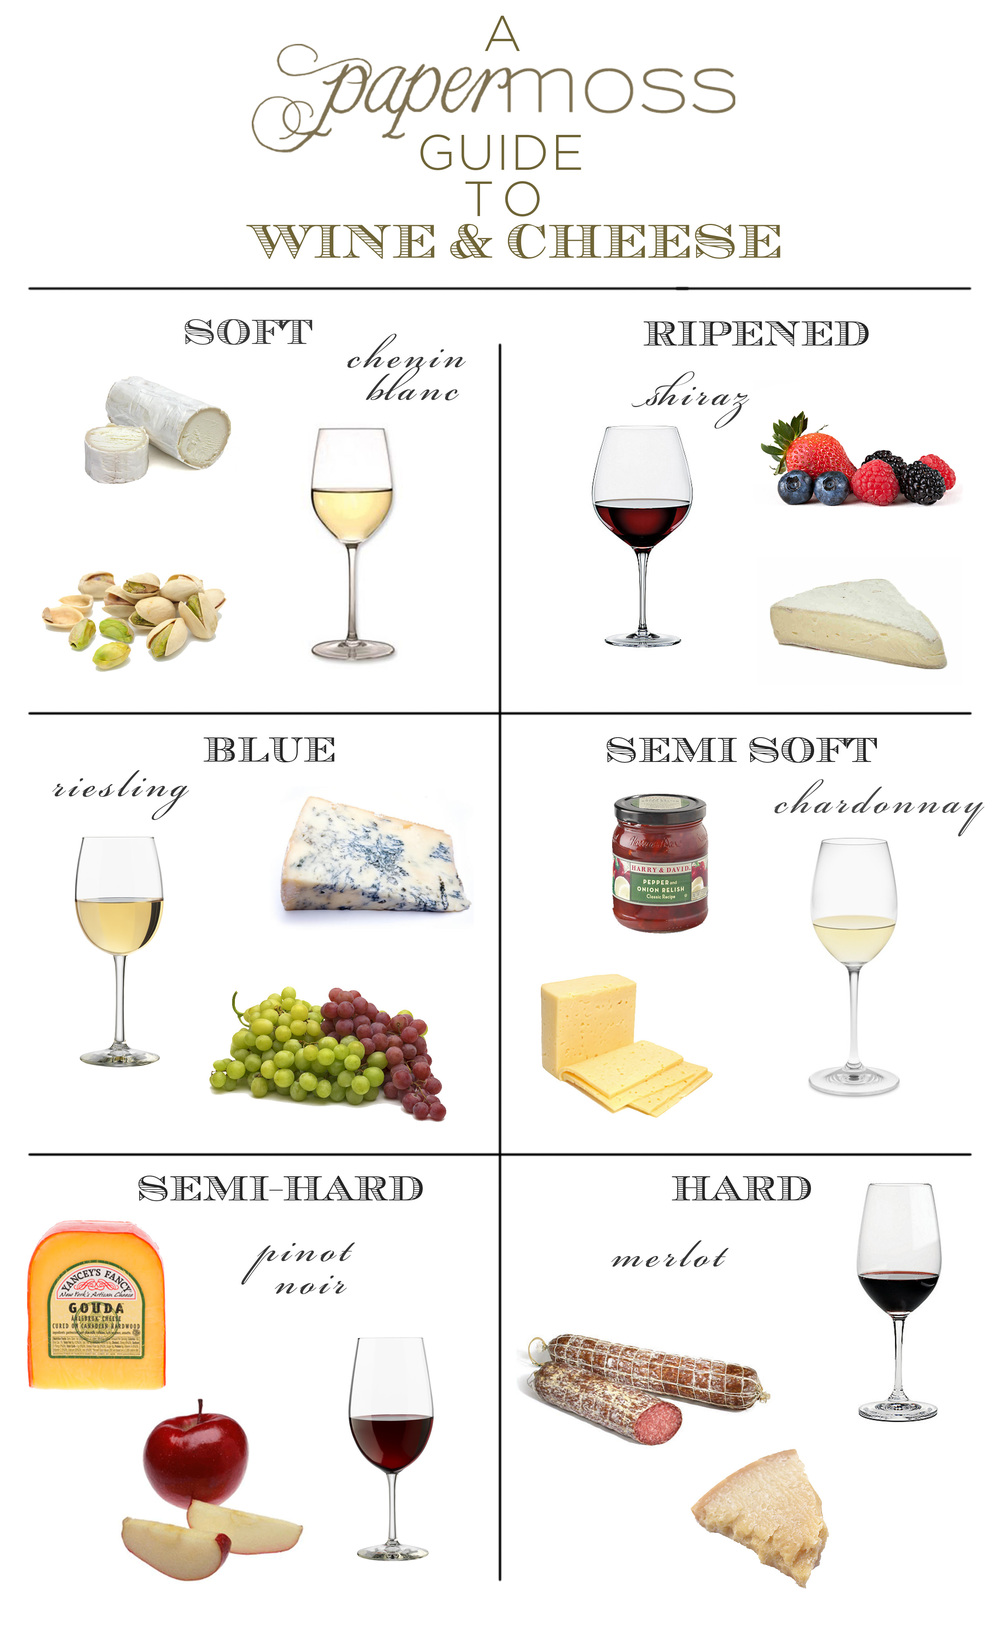 wineandcheese2.jpg